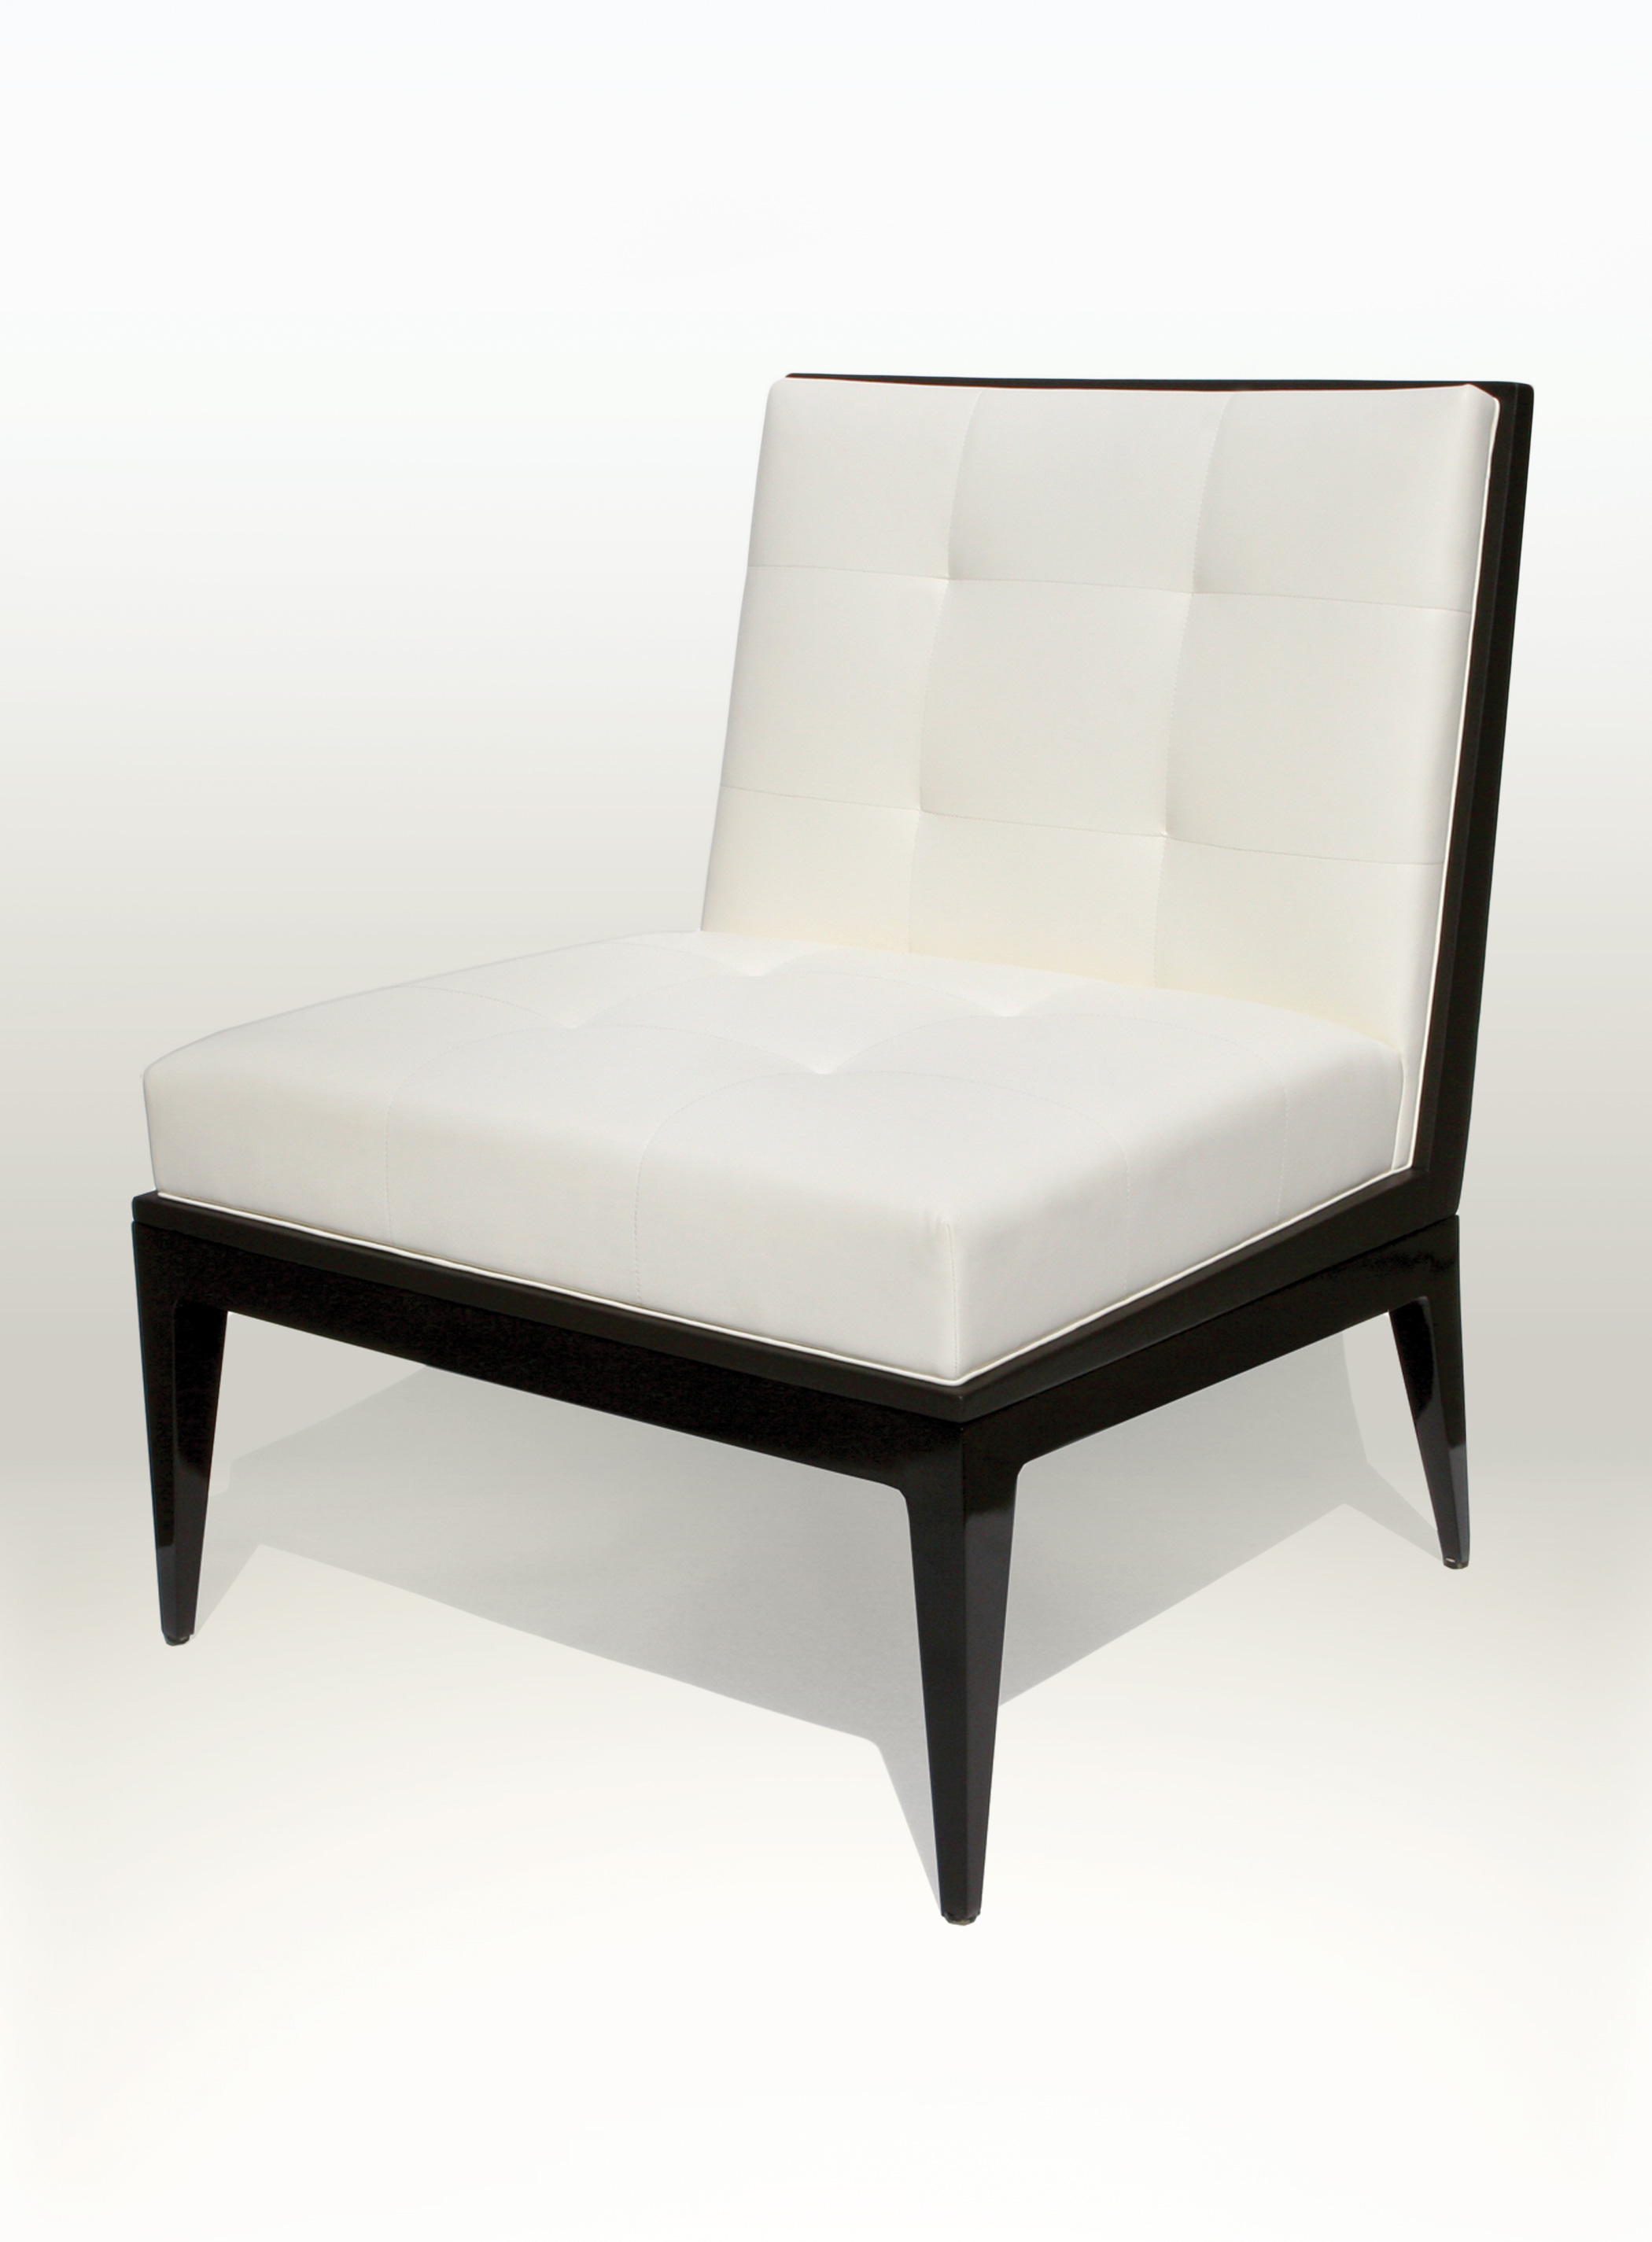 Plaza Lounge Chair